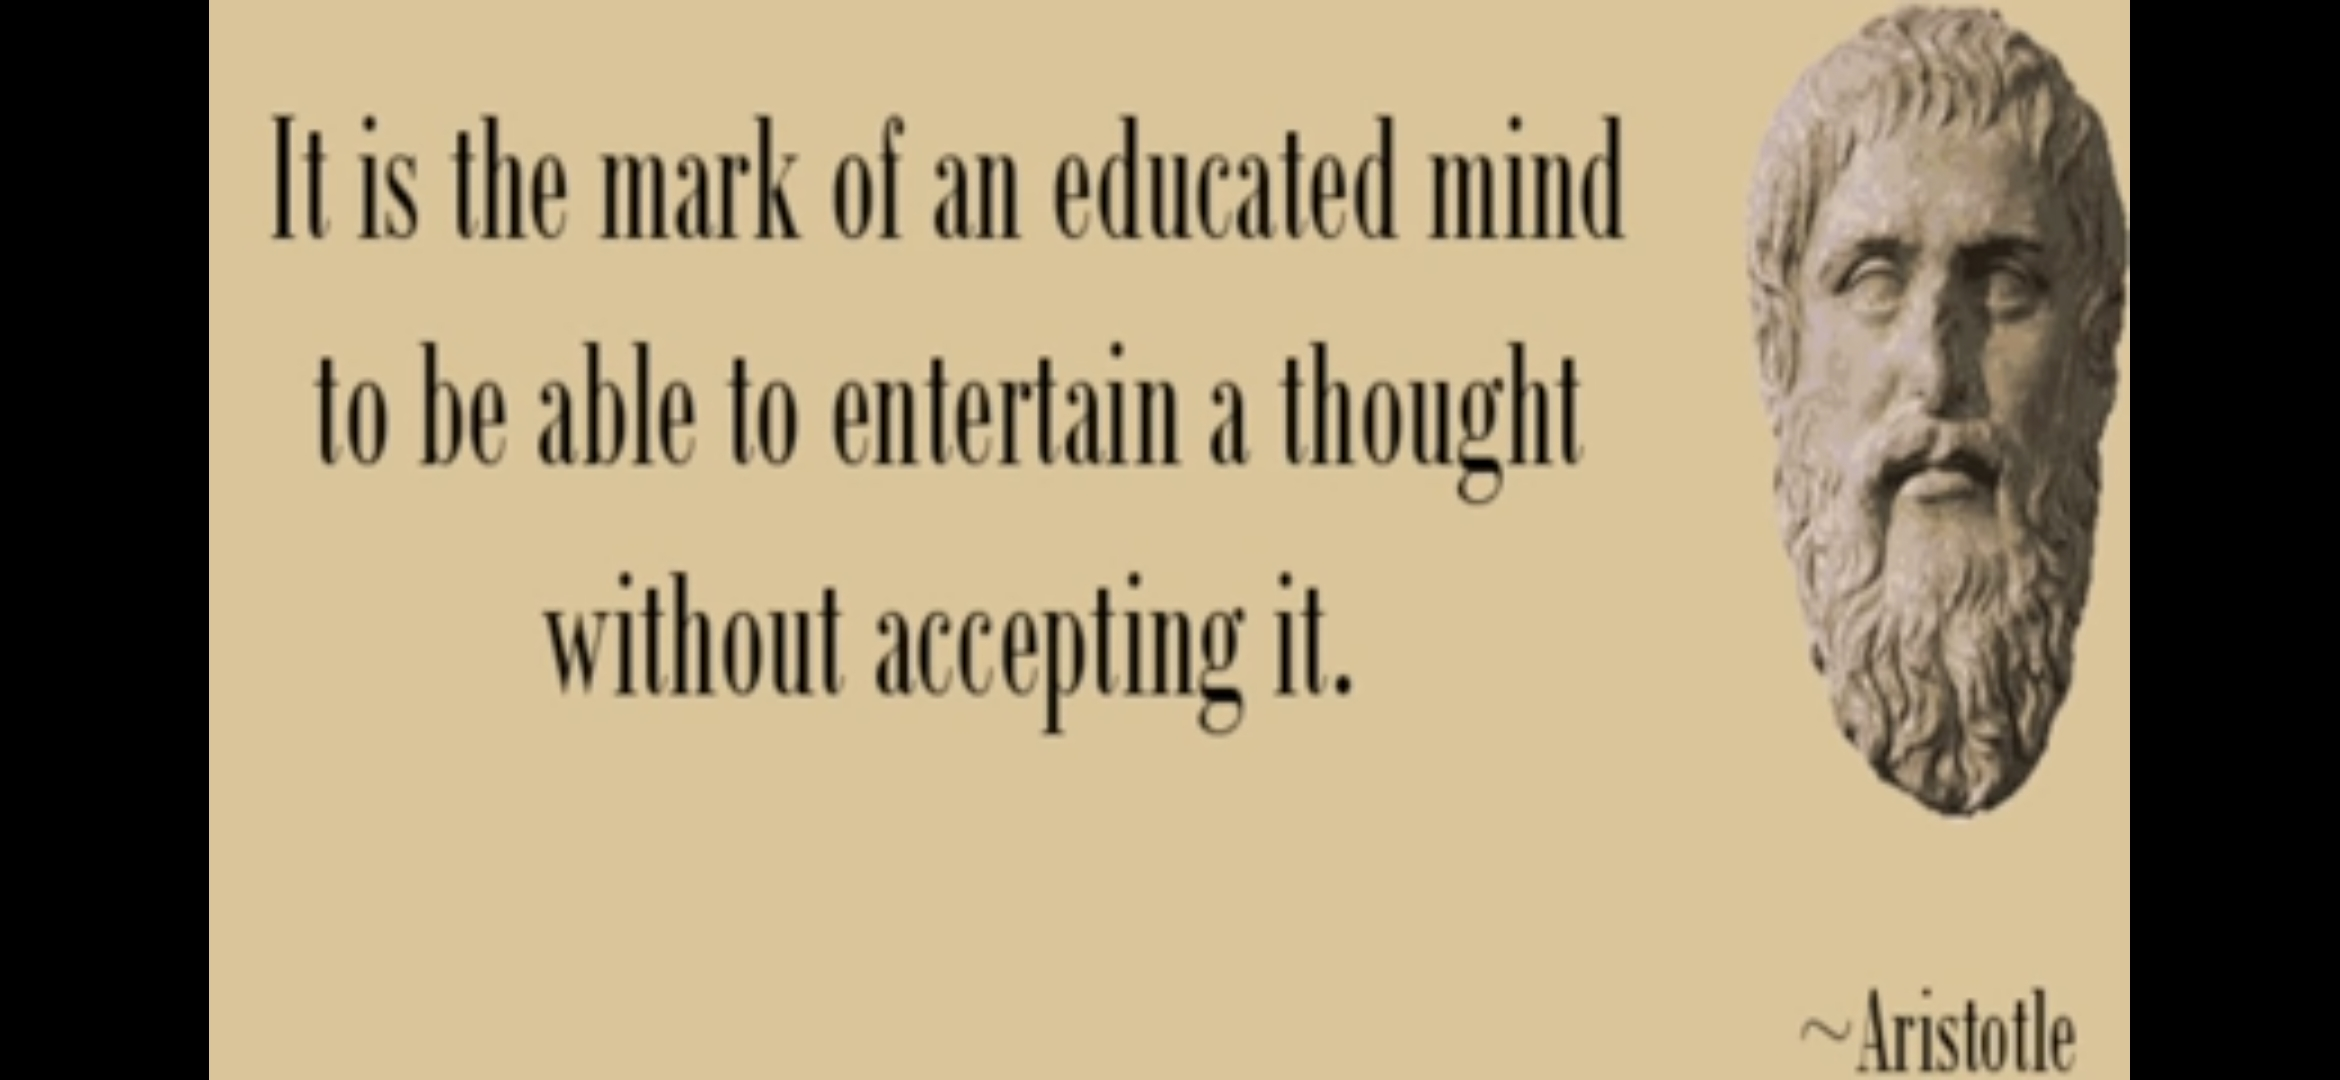 Mark of an educated mind- Aristotle (2340×1080)